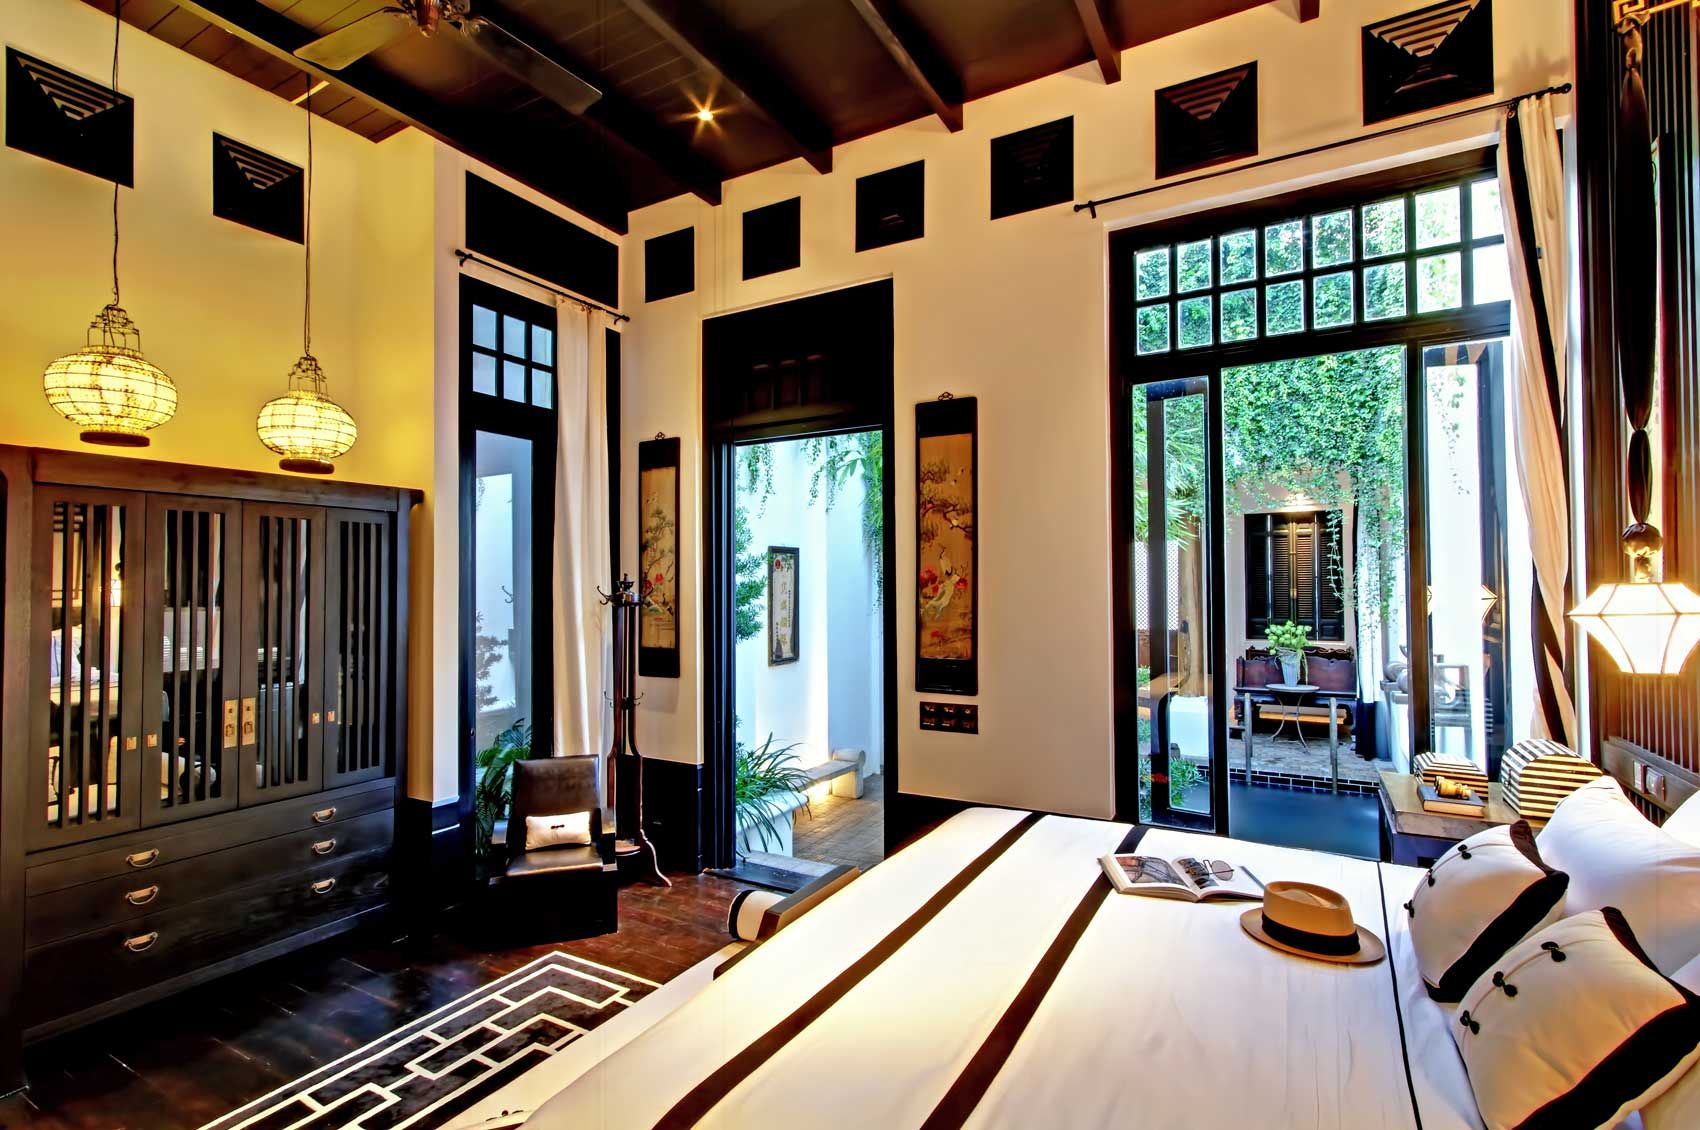 The Siam Hotel is one of Fodor s pick for City Chic hotel and best